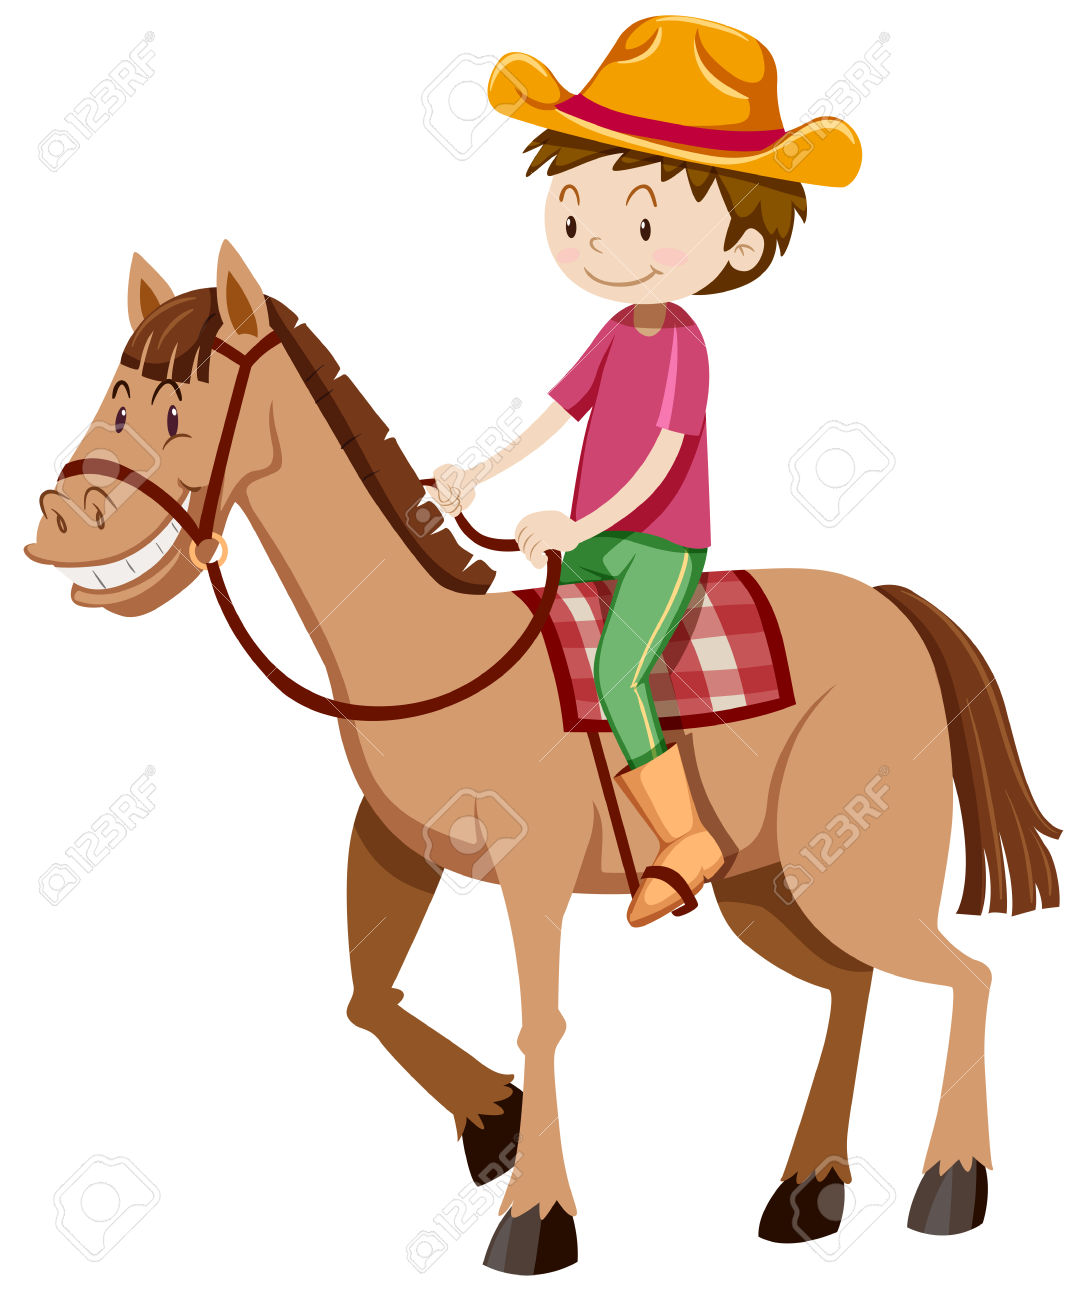 1089x1300 To Ride A Horse Clipart